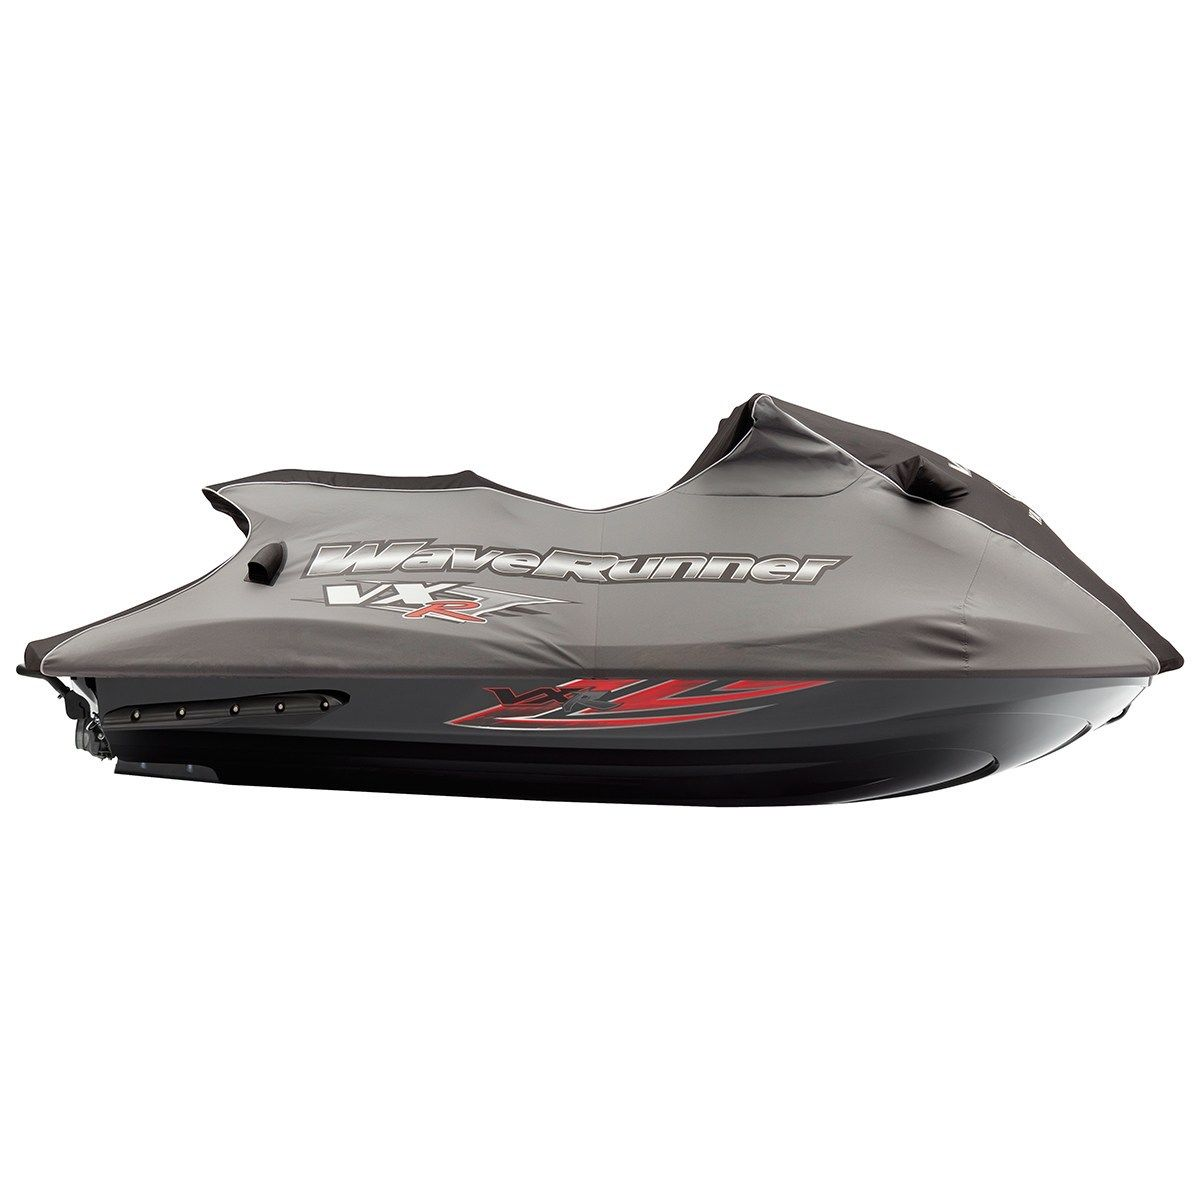 yamaha waverunner covers pwc performance parts